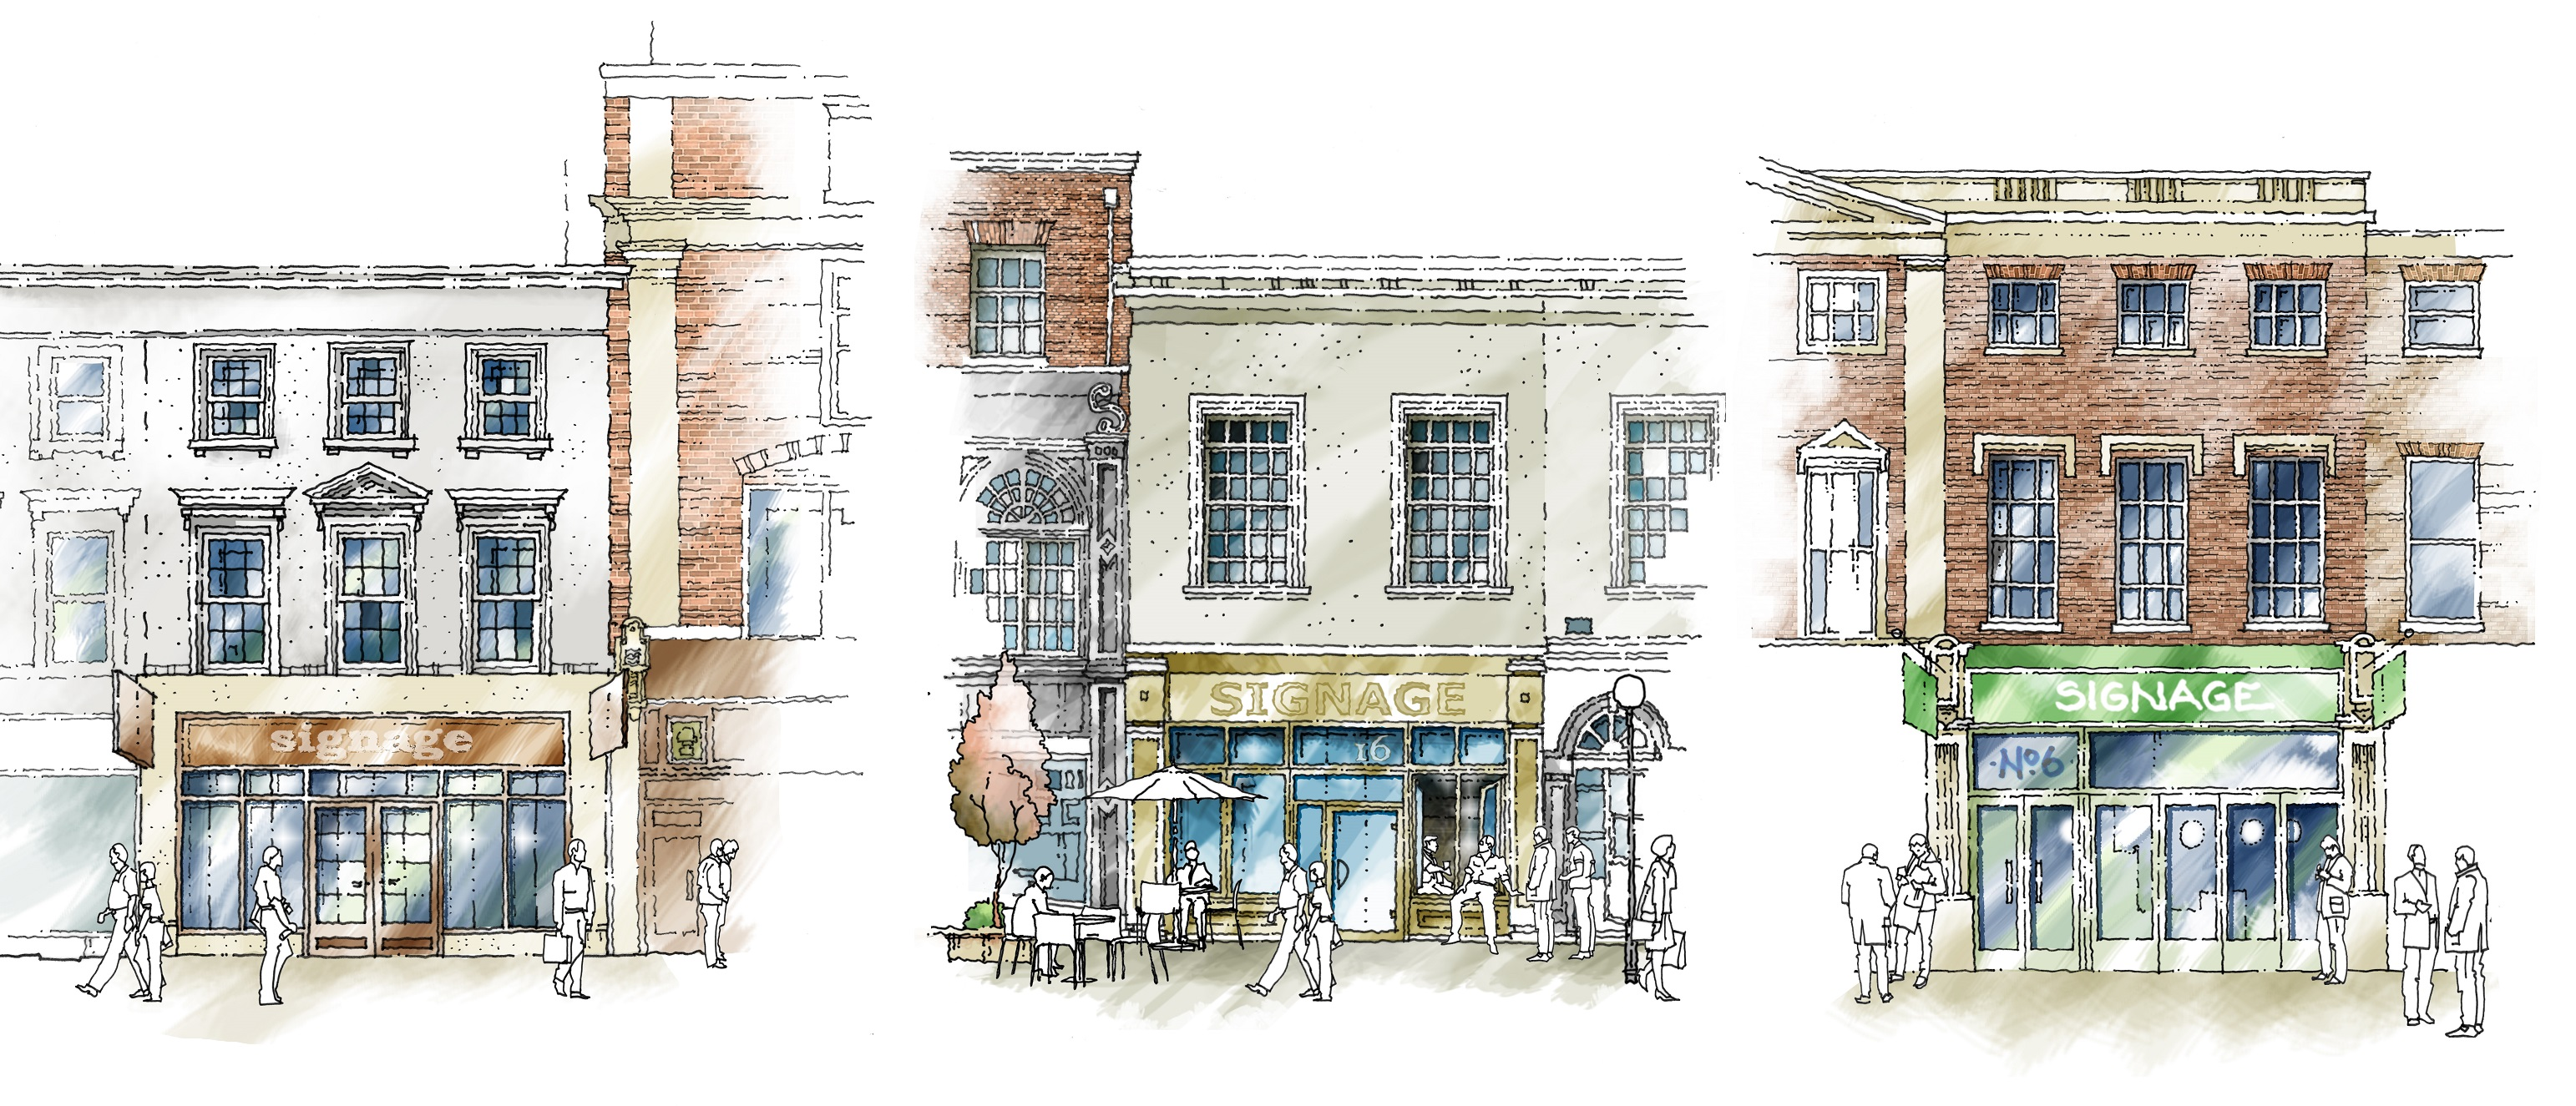 Concept sketches have been commissioned to show how the restoration of frontages to properties on Whitefriargate could be delivered that would reflect some of the original design features.